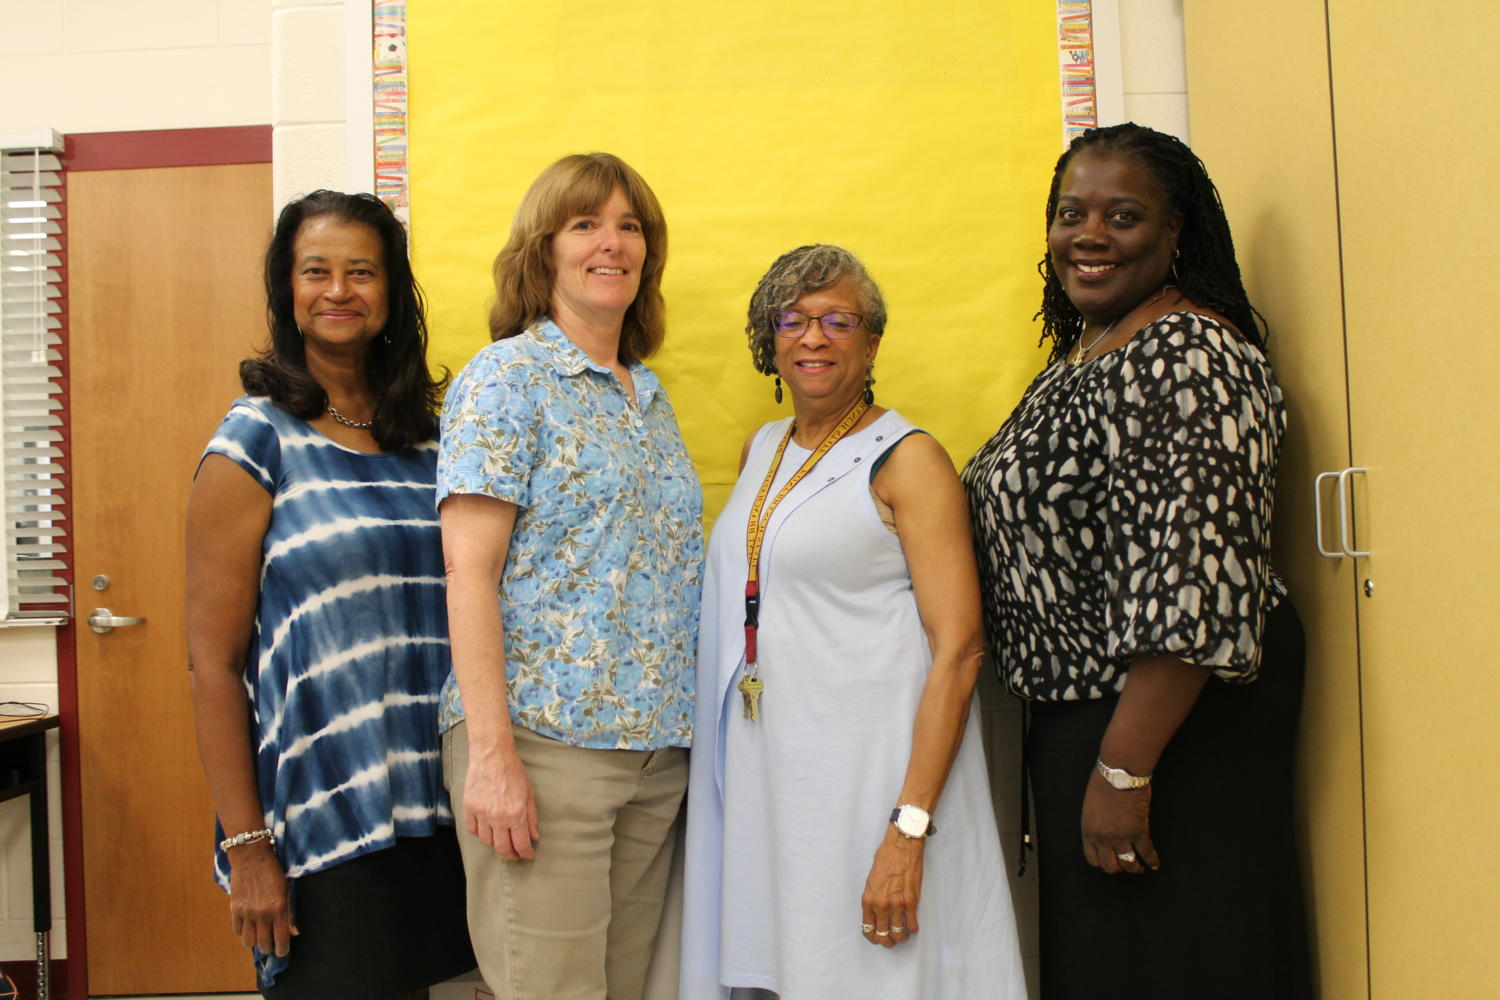 This year's retiring staff members include (above) Mrs. Pat Gafford, Ms. Gloria Cottman, Mrs. Barbara Britton, and Ms. Geraldine Finch. Retirees Mrs. Donna Weber and Ms. Marla Frenzel are not pictured.